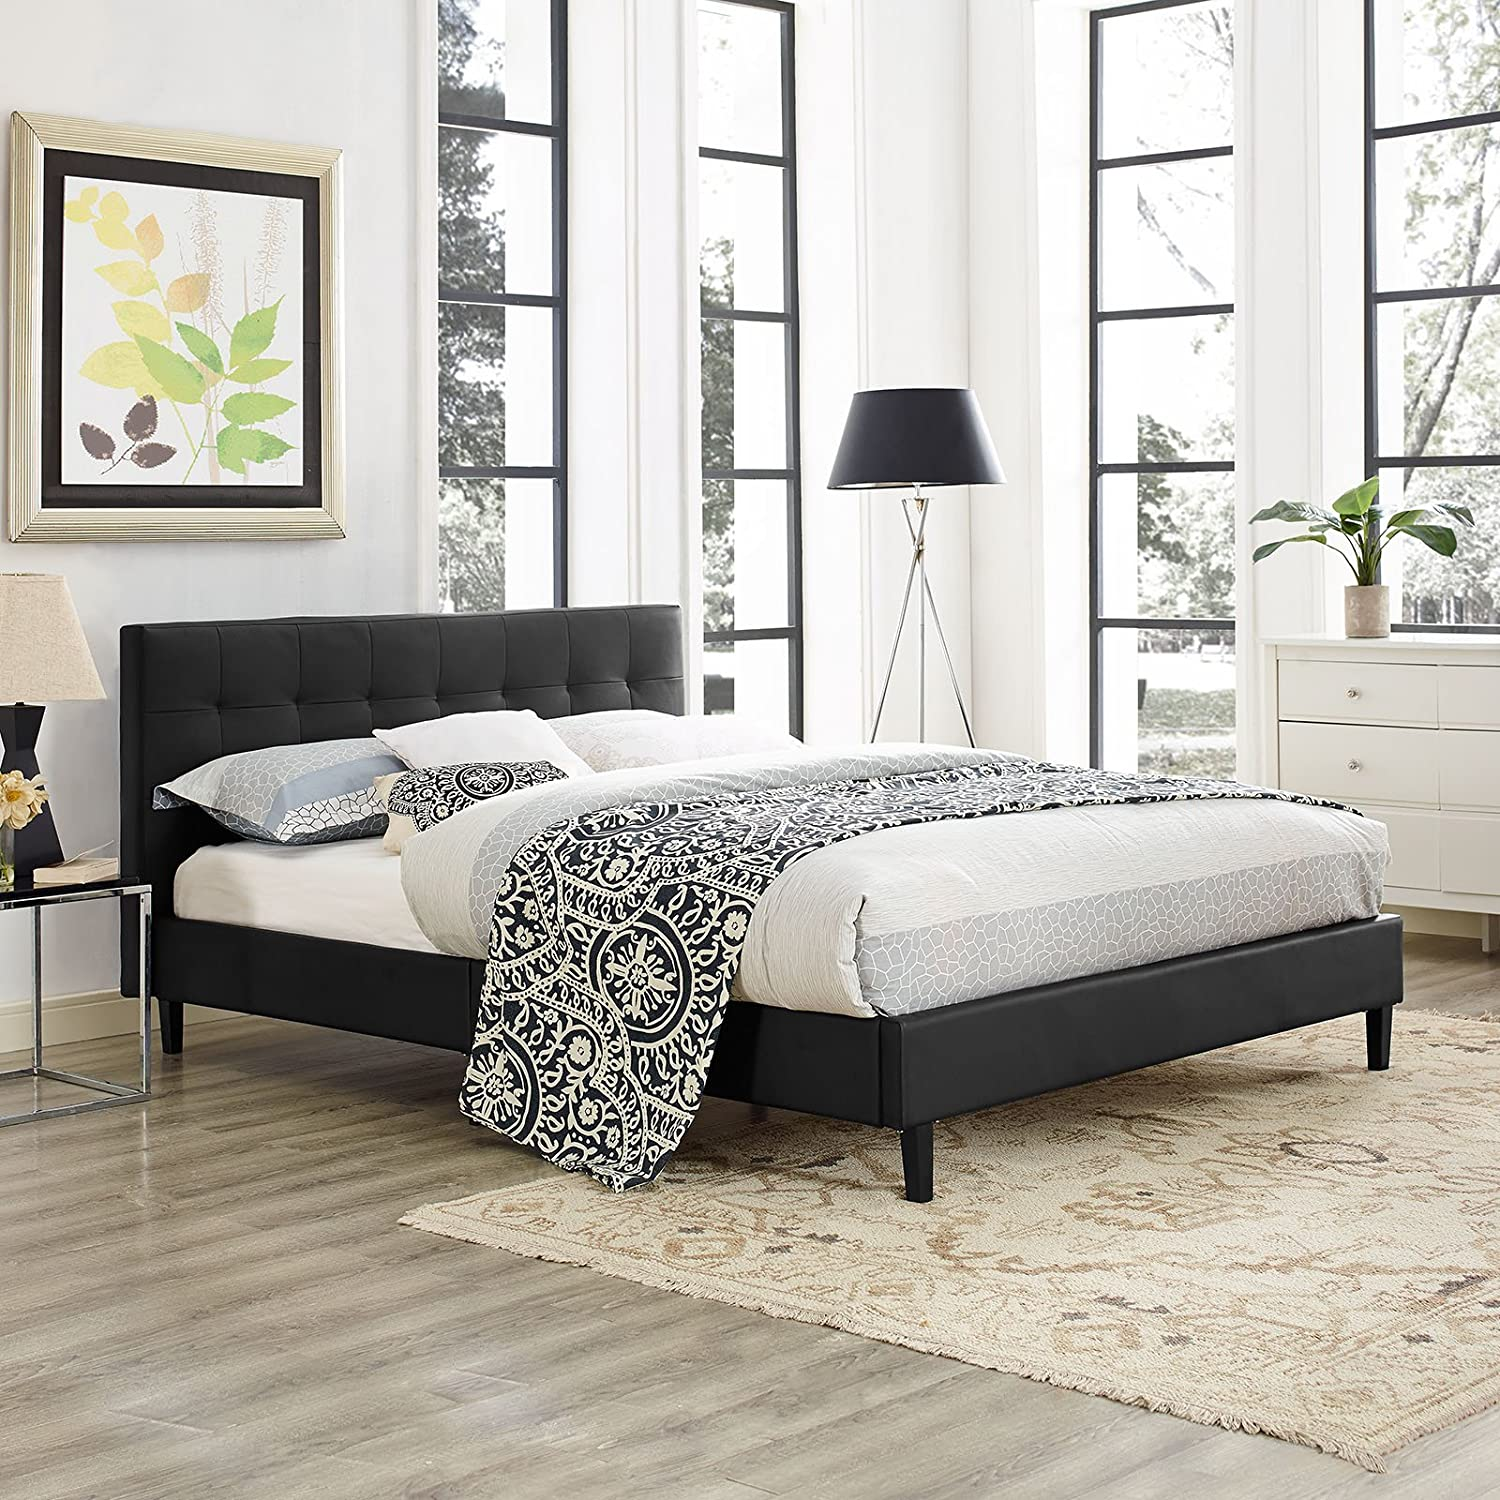 Modway Linnea Upholstered Black Faux Leather Queen Platform Bed with Wood Slat Support